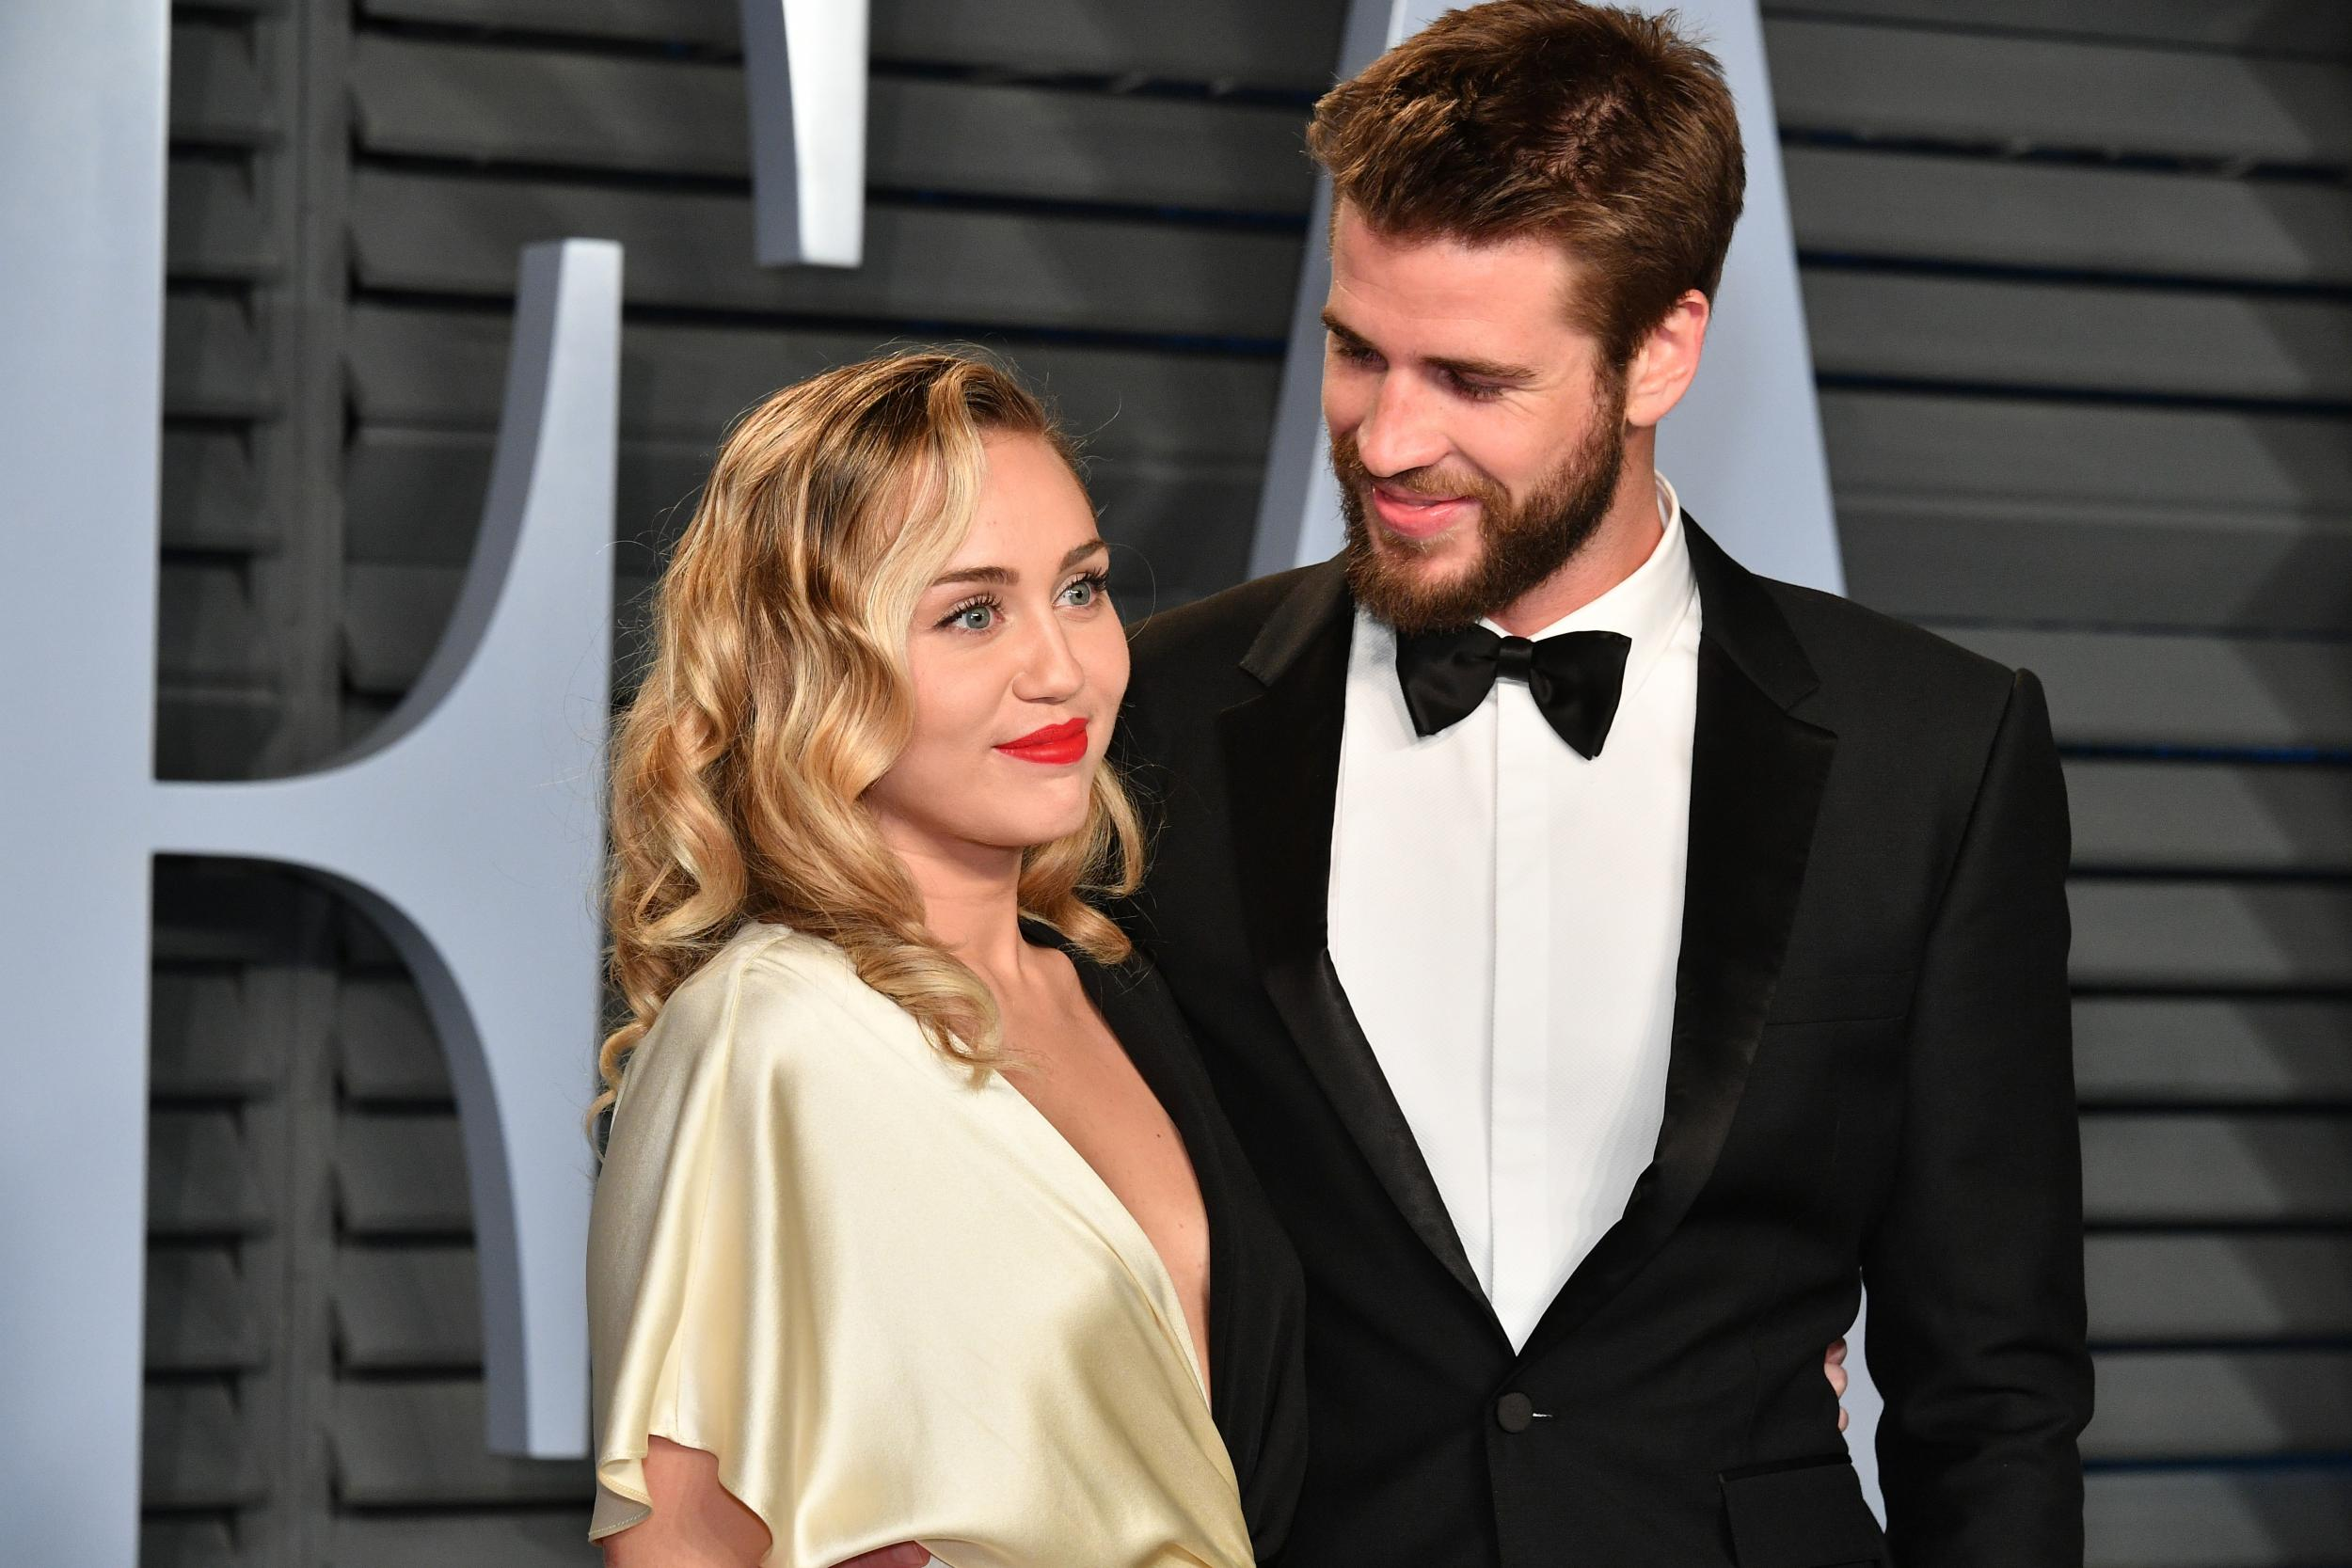 Miley Cyrus shares photos of vegan wedding to Liam Hemsworth